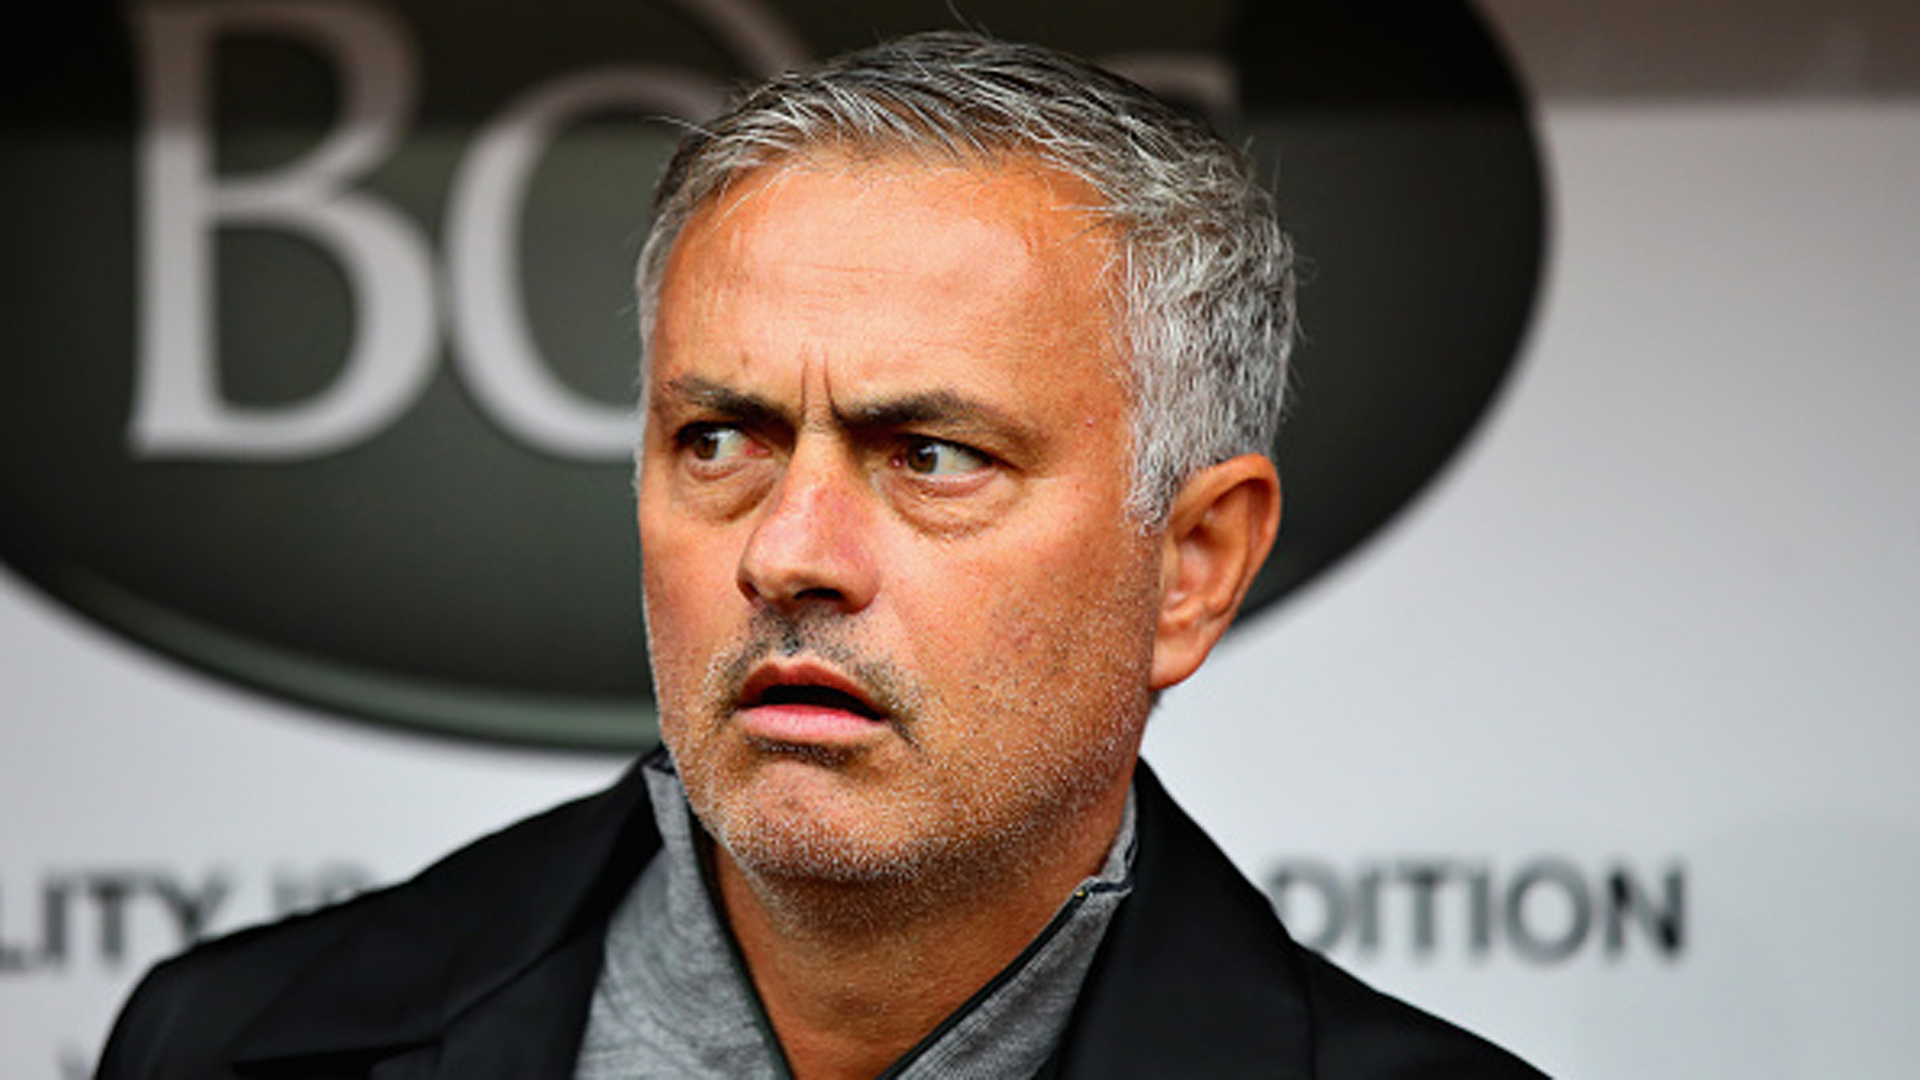 Gary Neville blasts Manchester United hierarchy amid Jose Mourinho reports